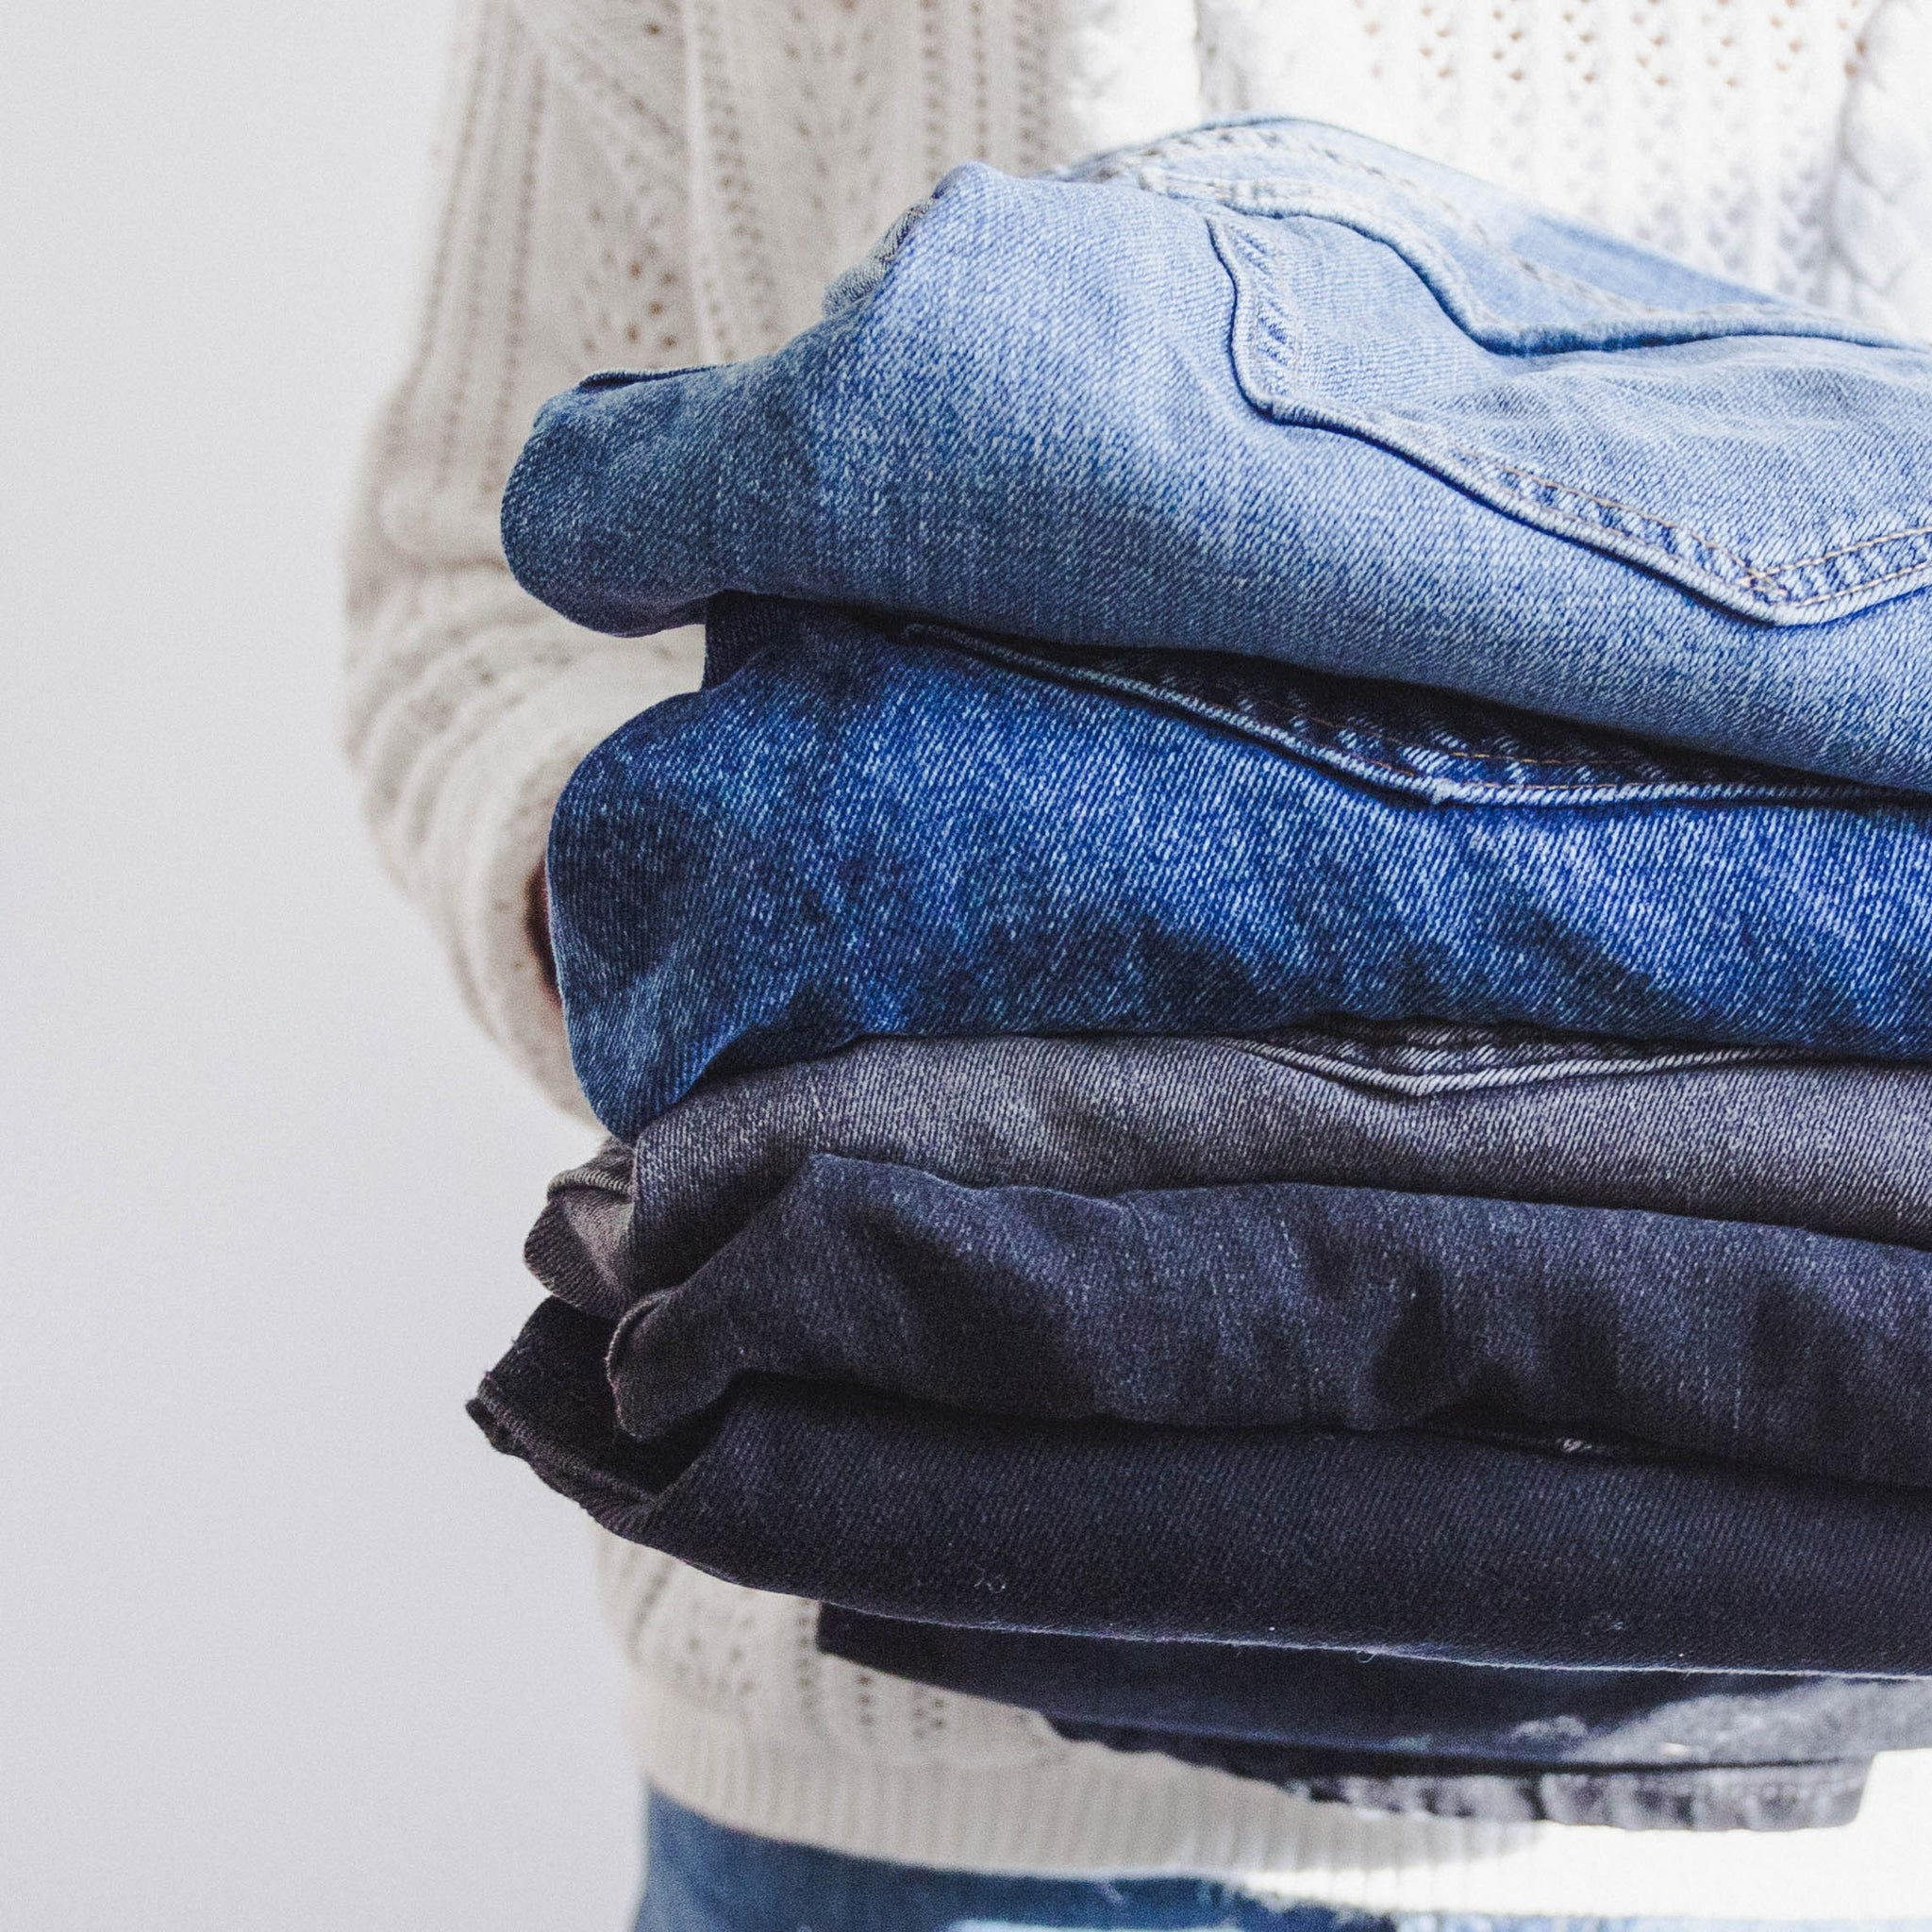 Clothing donation, pile of jeans in